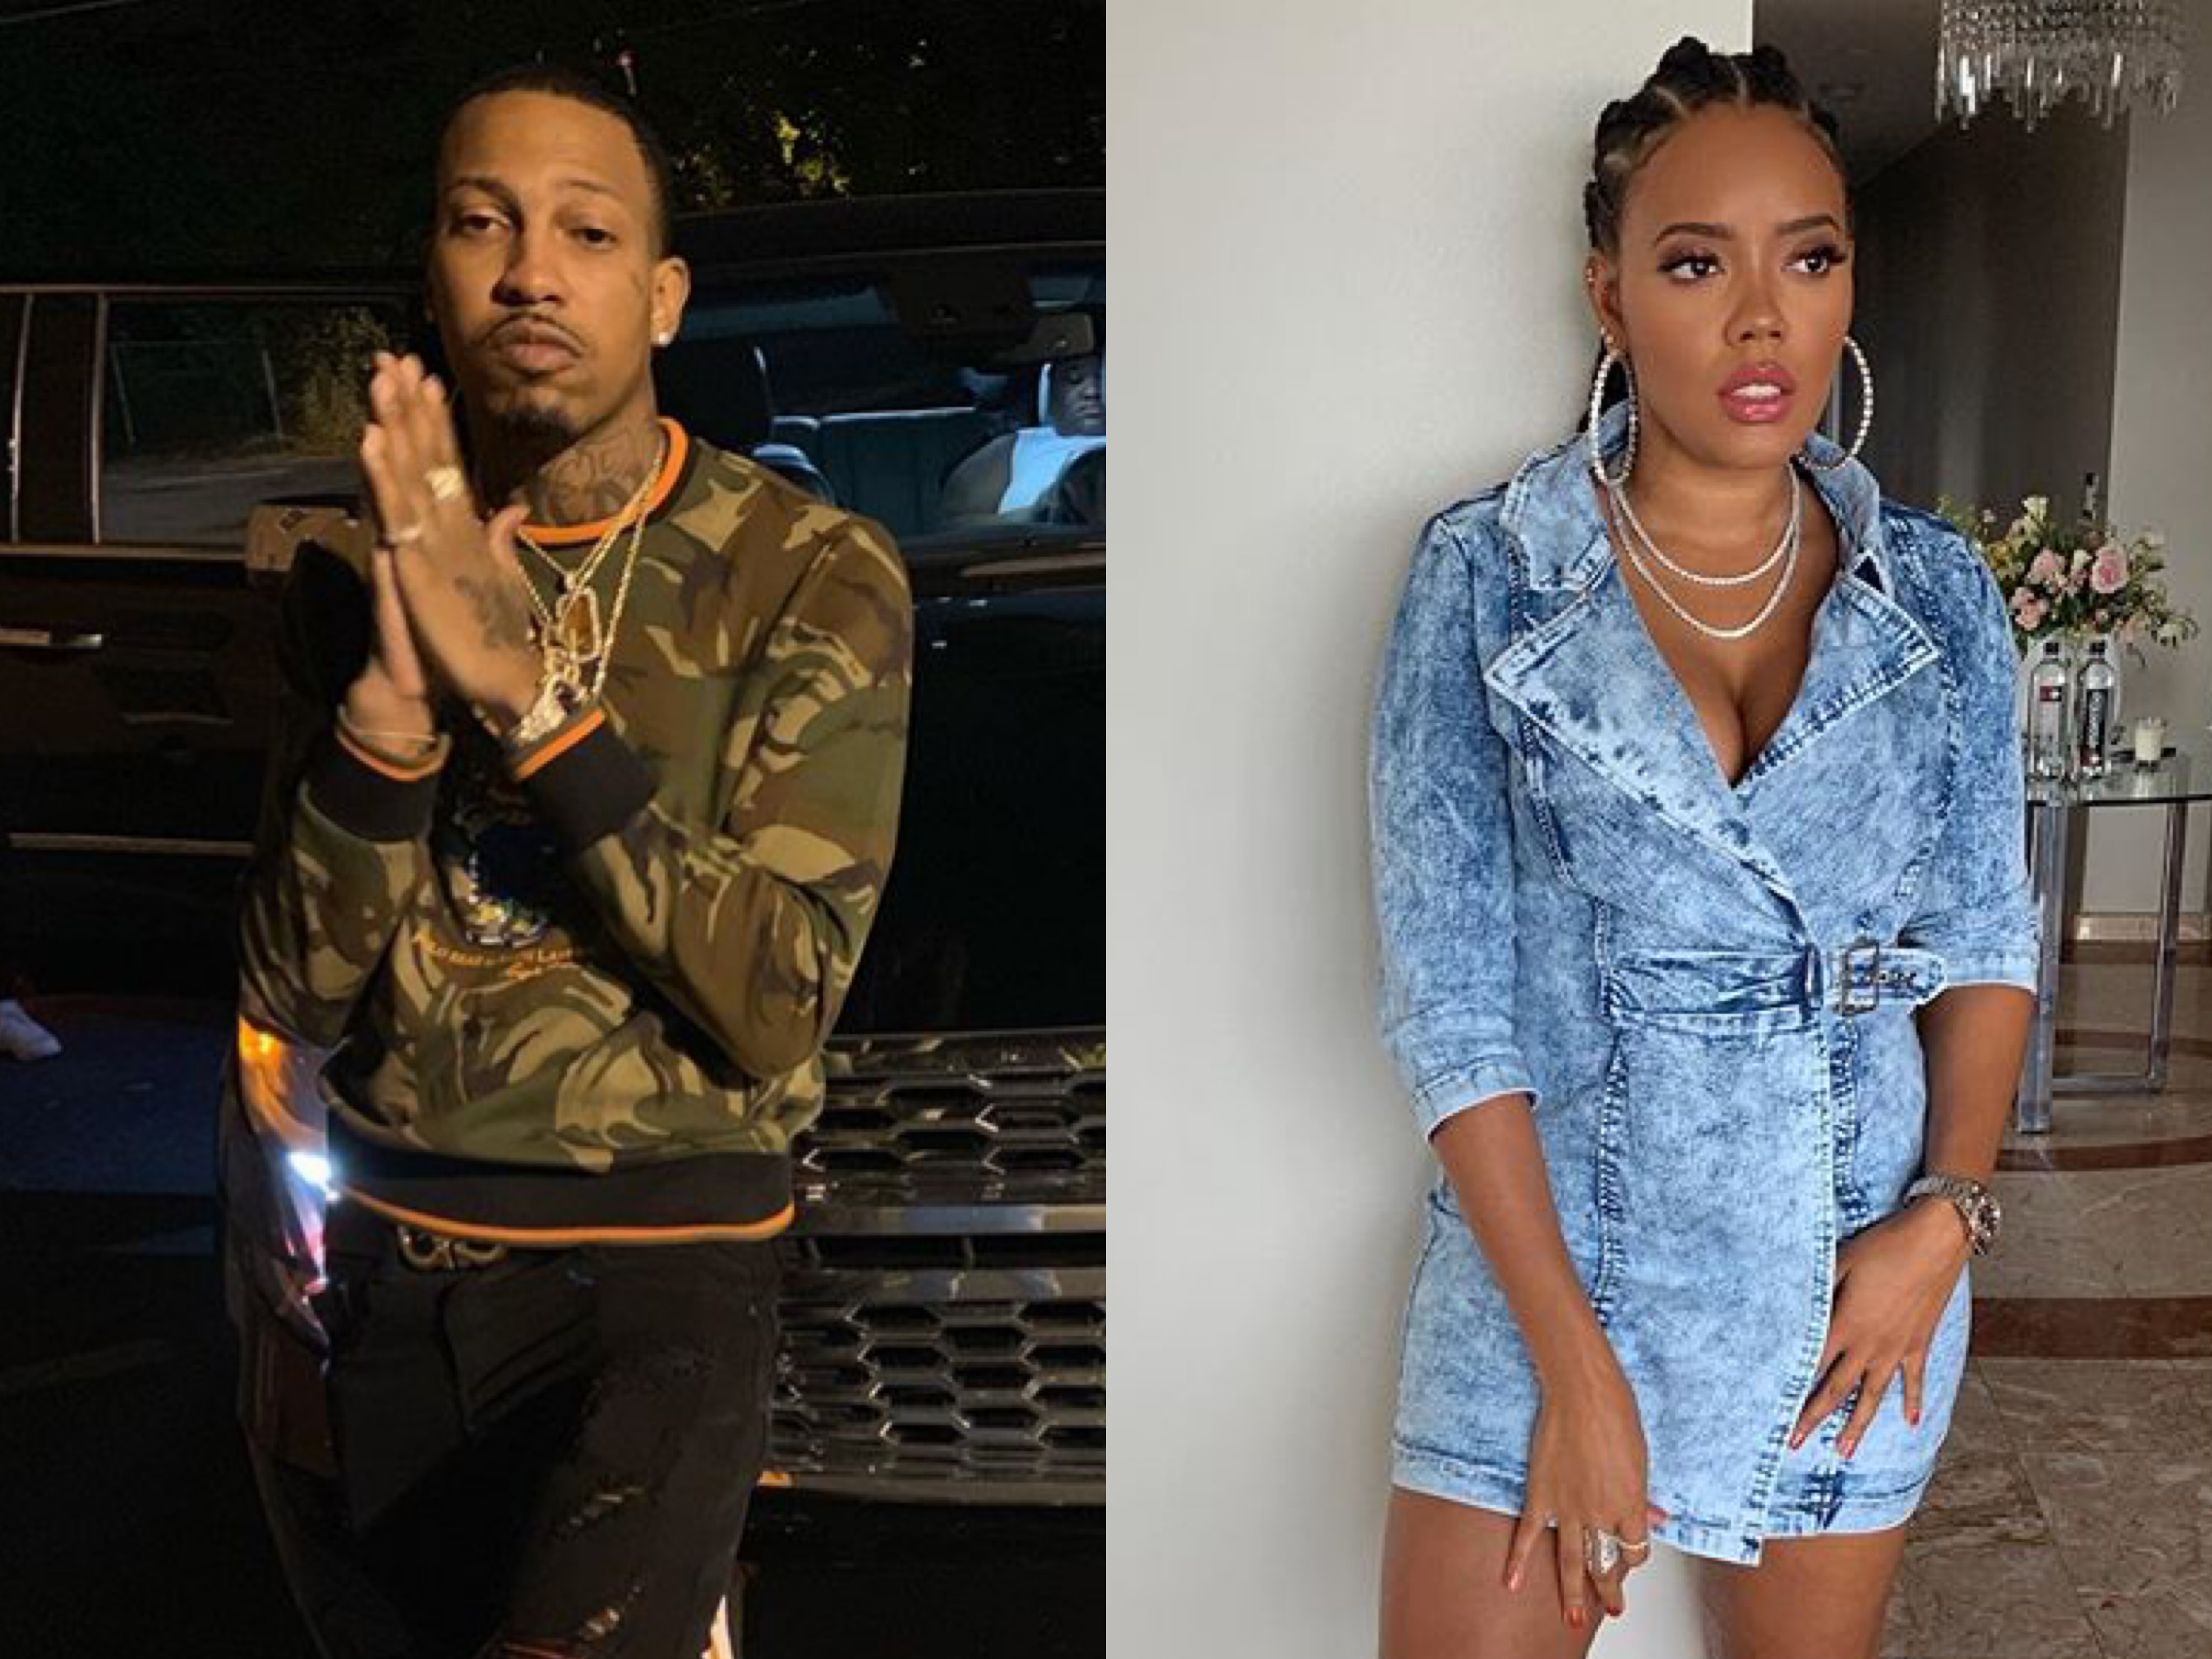 Trouble reposted photos of Angela Simmons and tags her as she poses with a bag of Cheetos and seemingly shoots his shot at her.